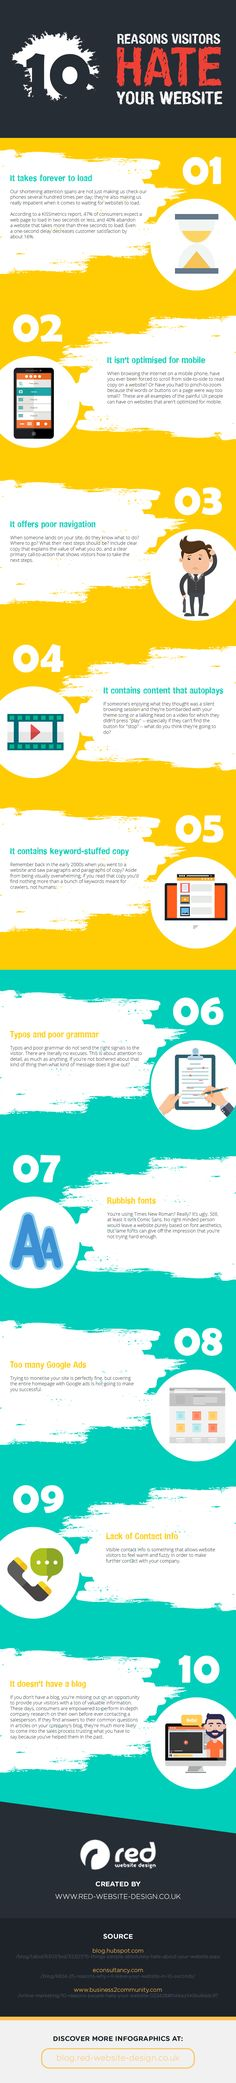 10 Reasons Visitors Hate Your Website #Infographic #WebDesign